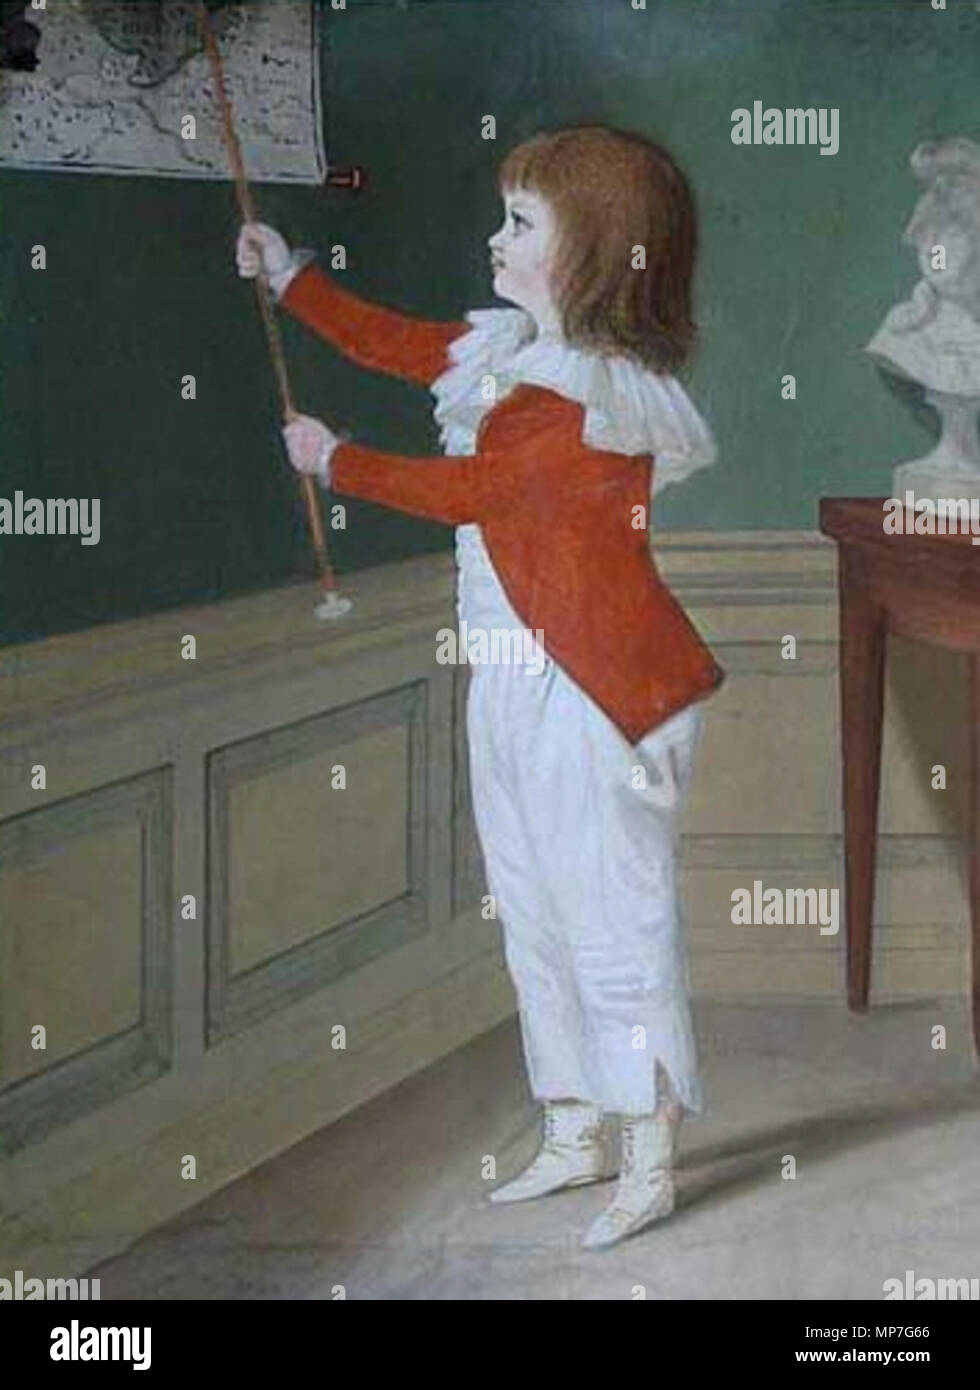 English: Little boy in a white dress and red blaser point